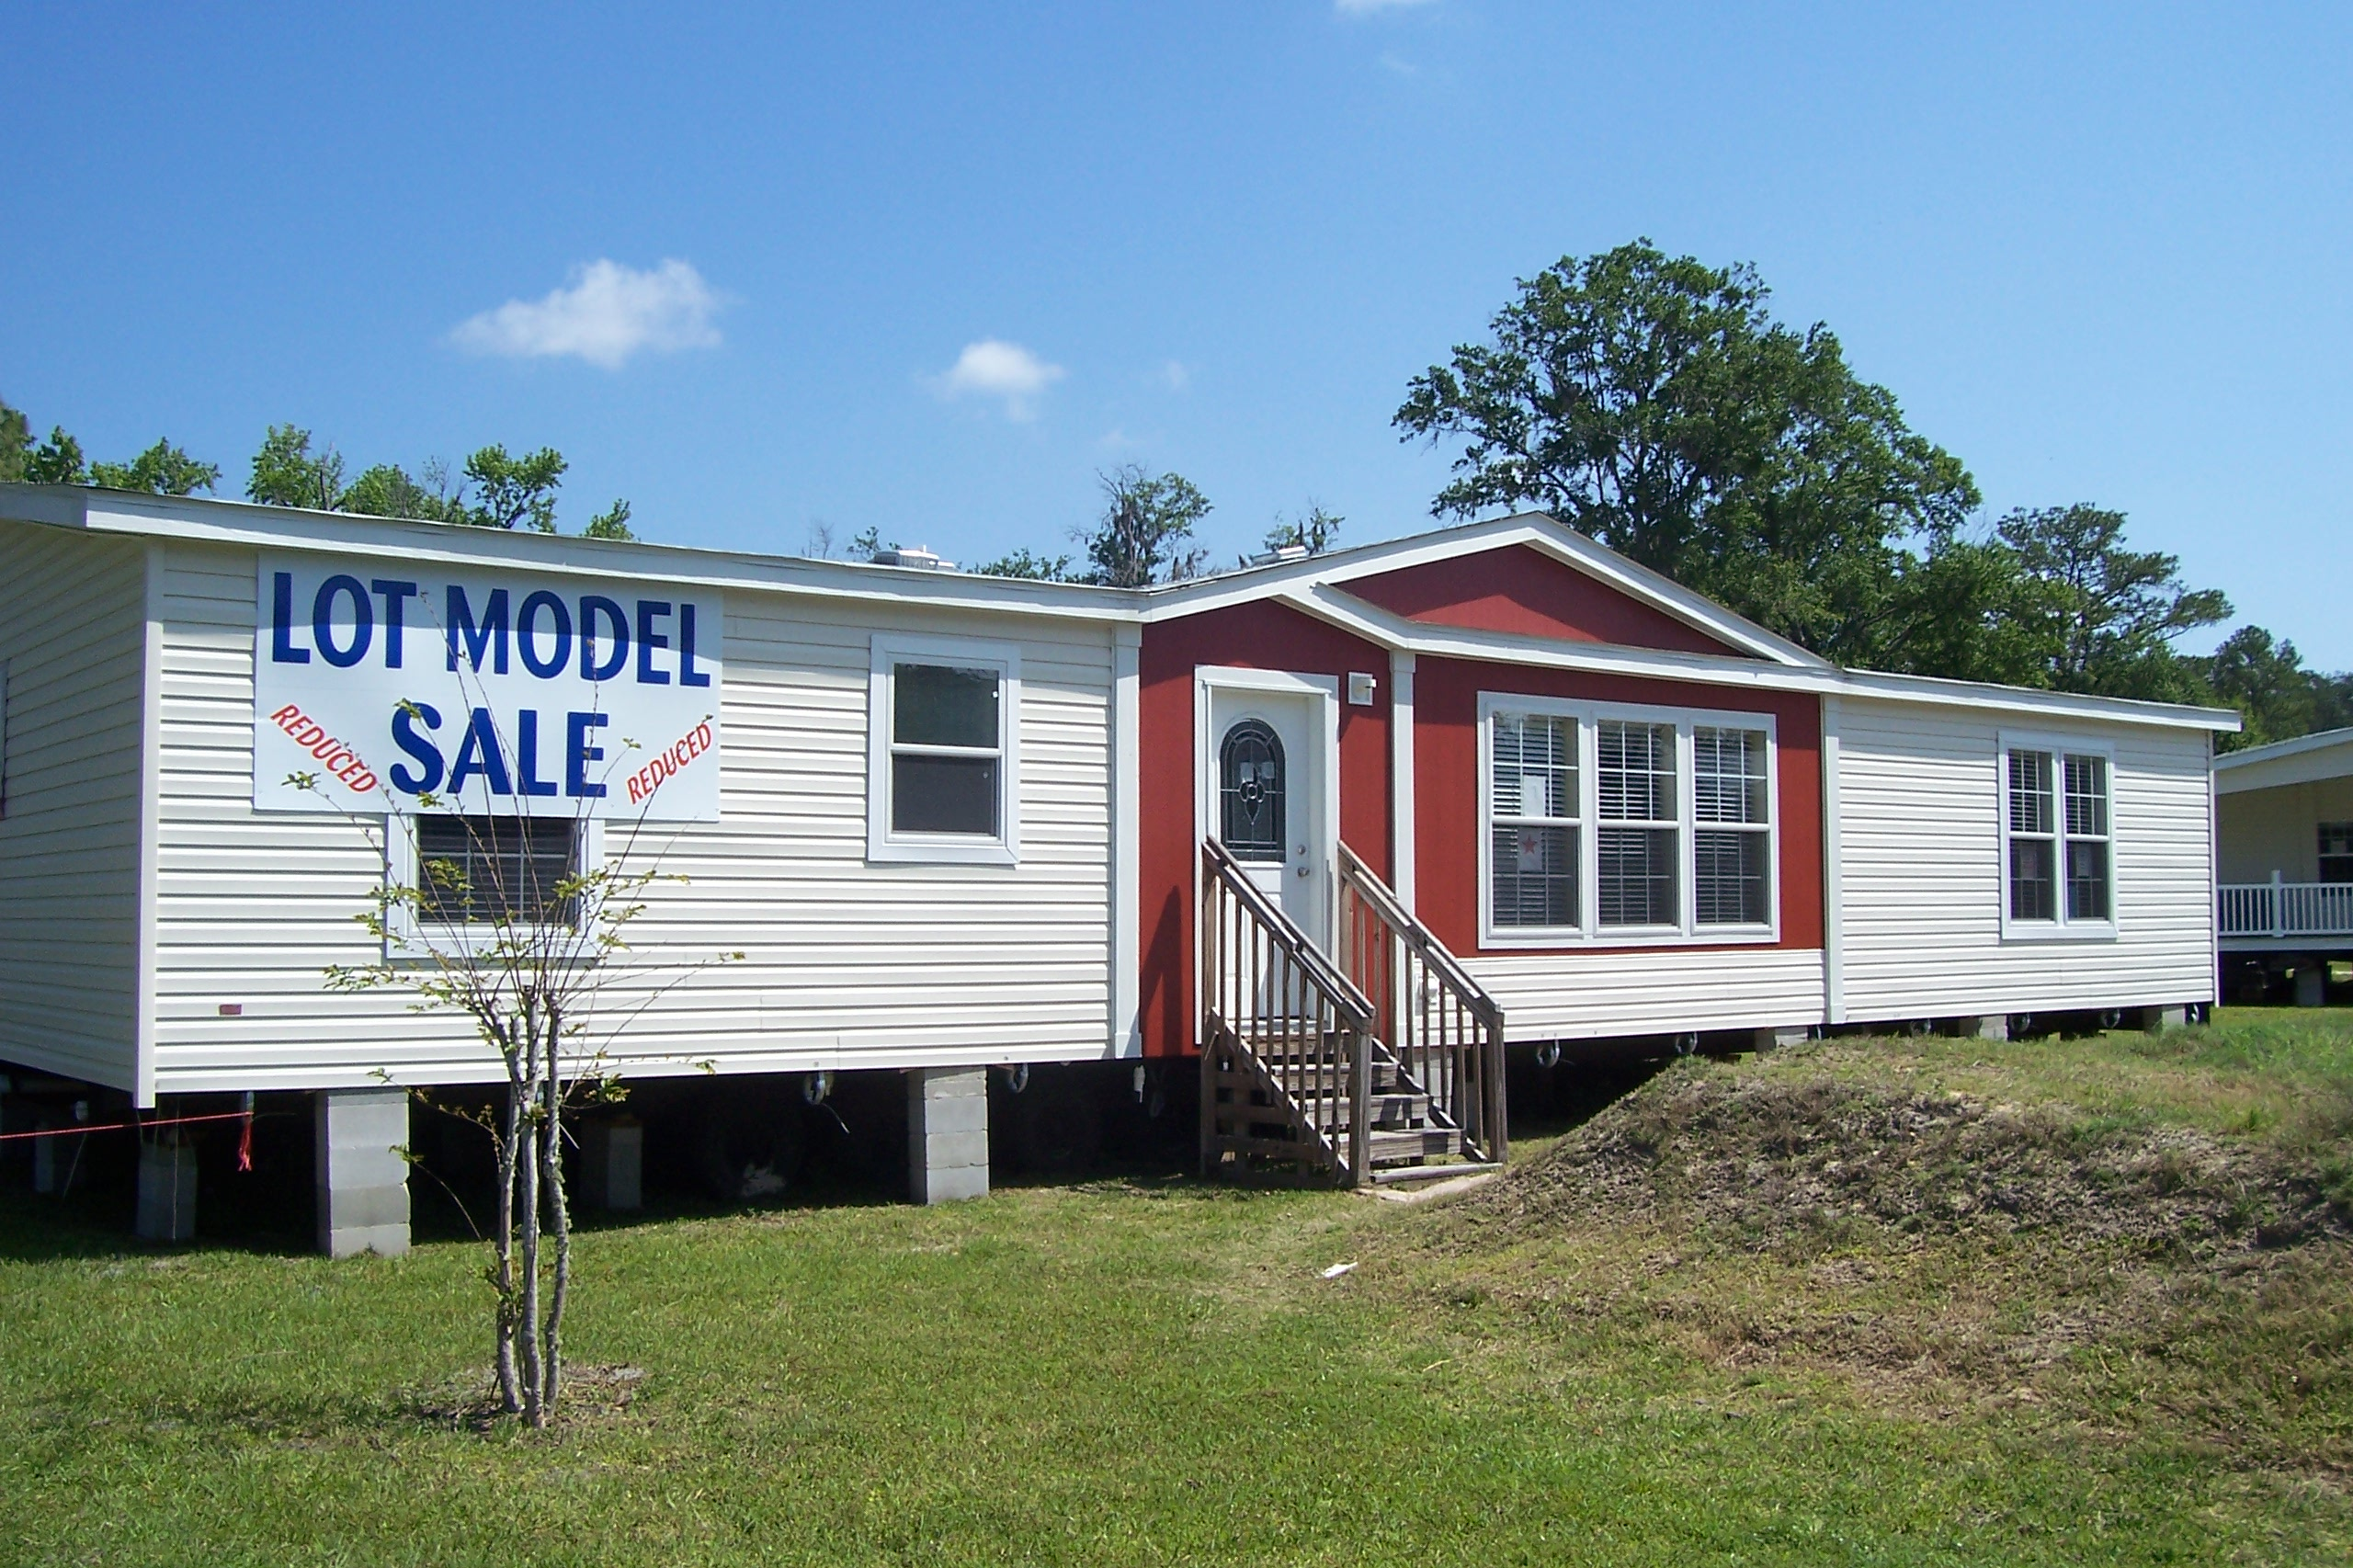 used mobile homes for sale in florida by owner with Central Florida Outdoor Activities on 420 Weed Backgrounds in addition Manufactured Home Bill Of Sale Fillable Pdf additionally Watch furthermore Used Mobile Homes For Sale By Owner in addition Used Mobile Homes For Sale By Owner.